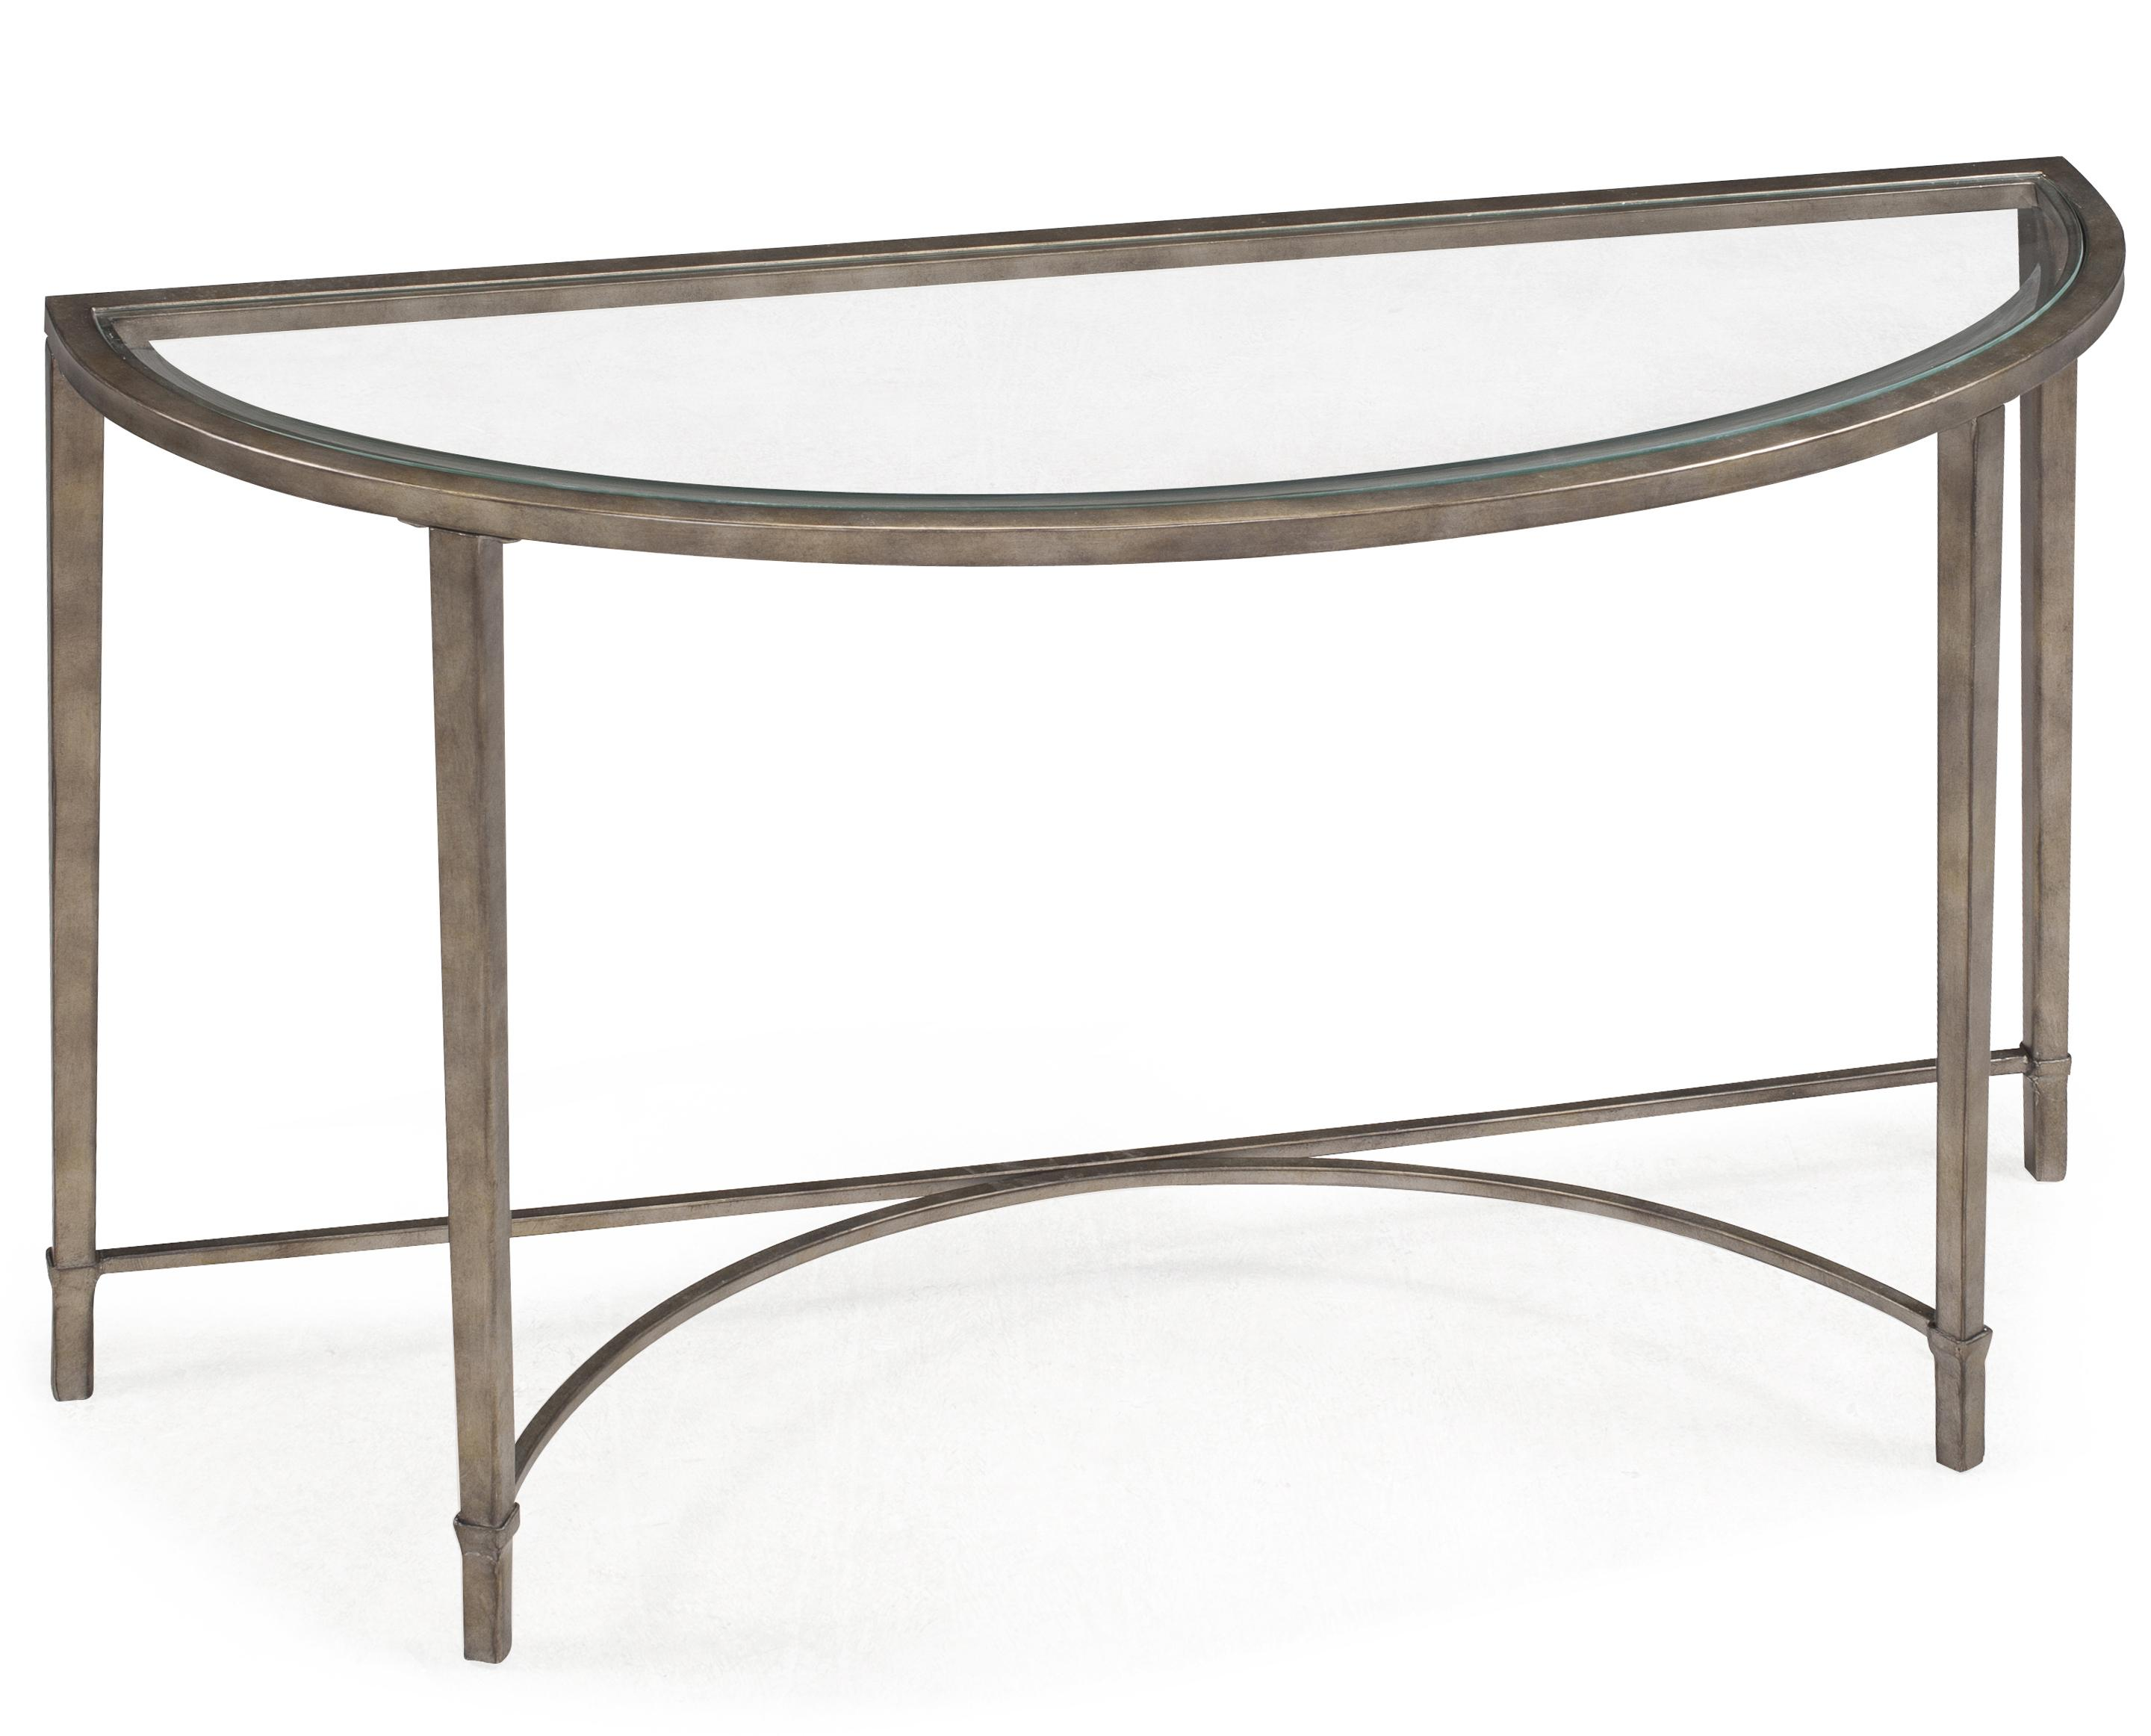 Copia Sofa Table by Magnussen Home at HomeWorld Furniture